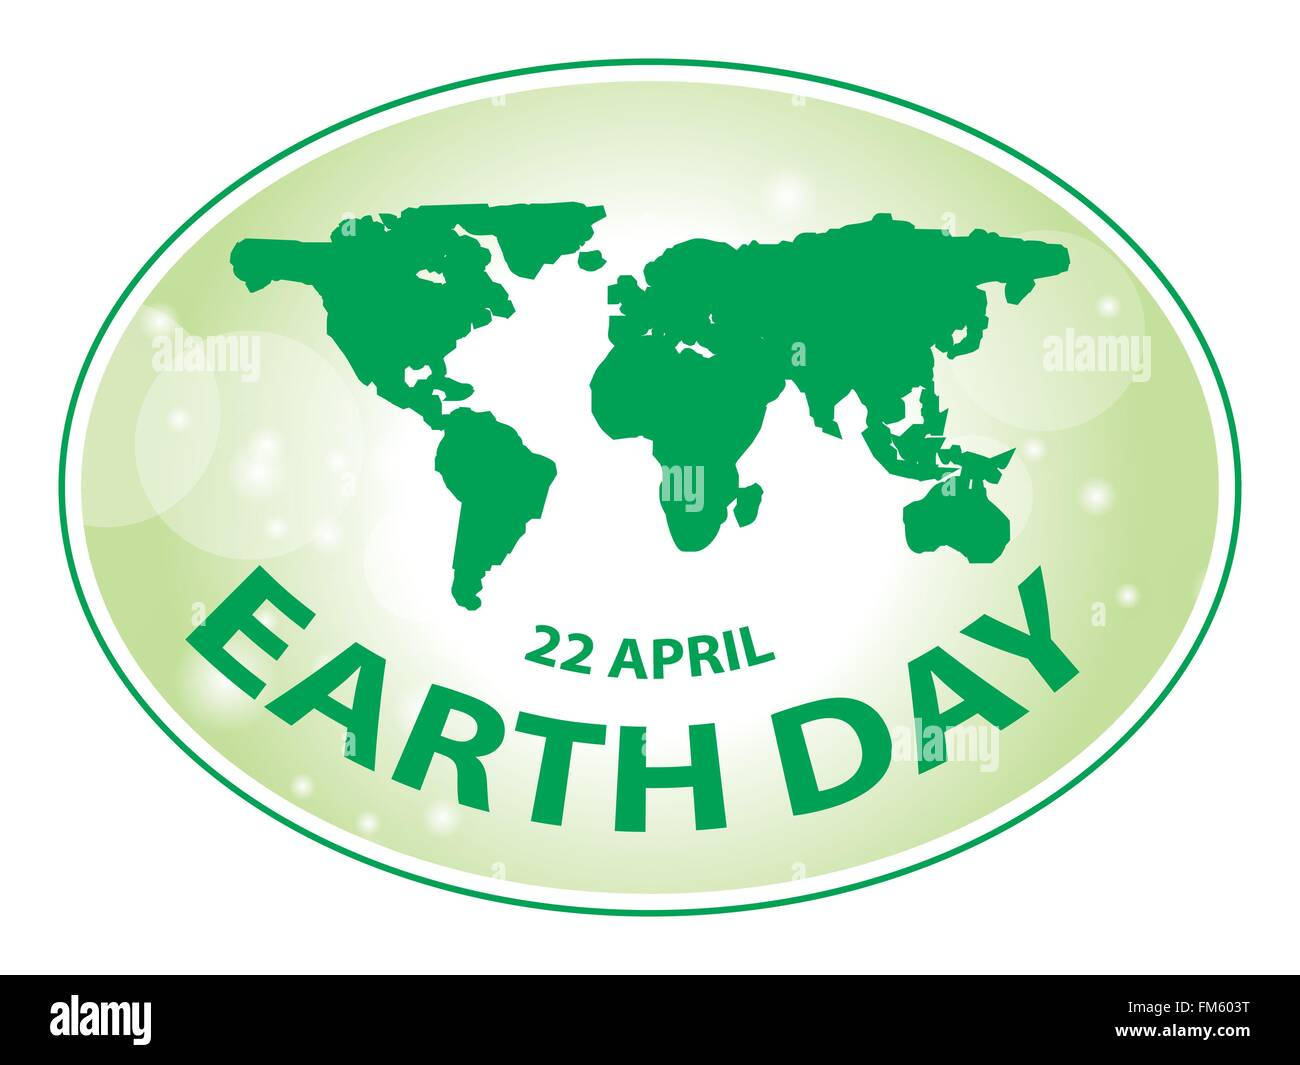 earth day green grunge map banner vector illustration 2 - Stock Image